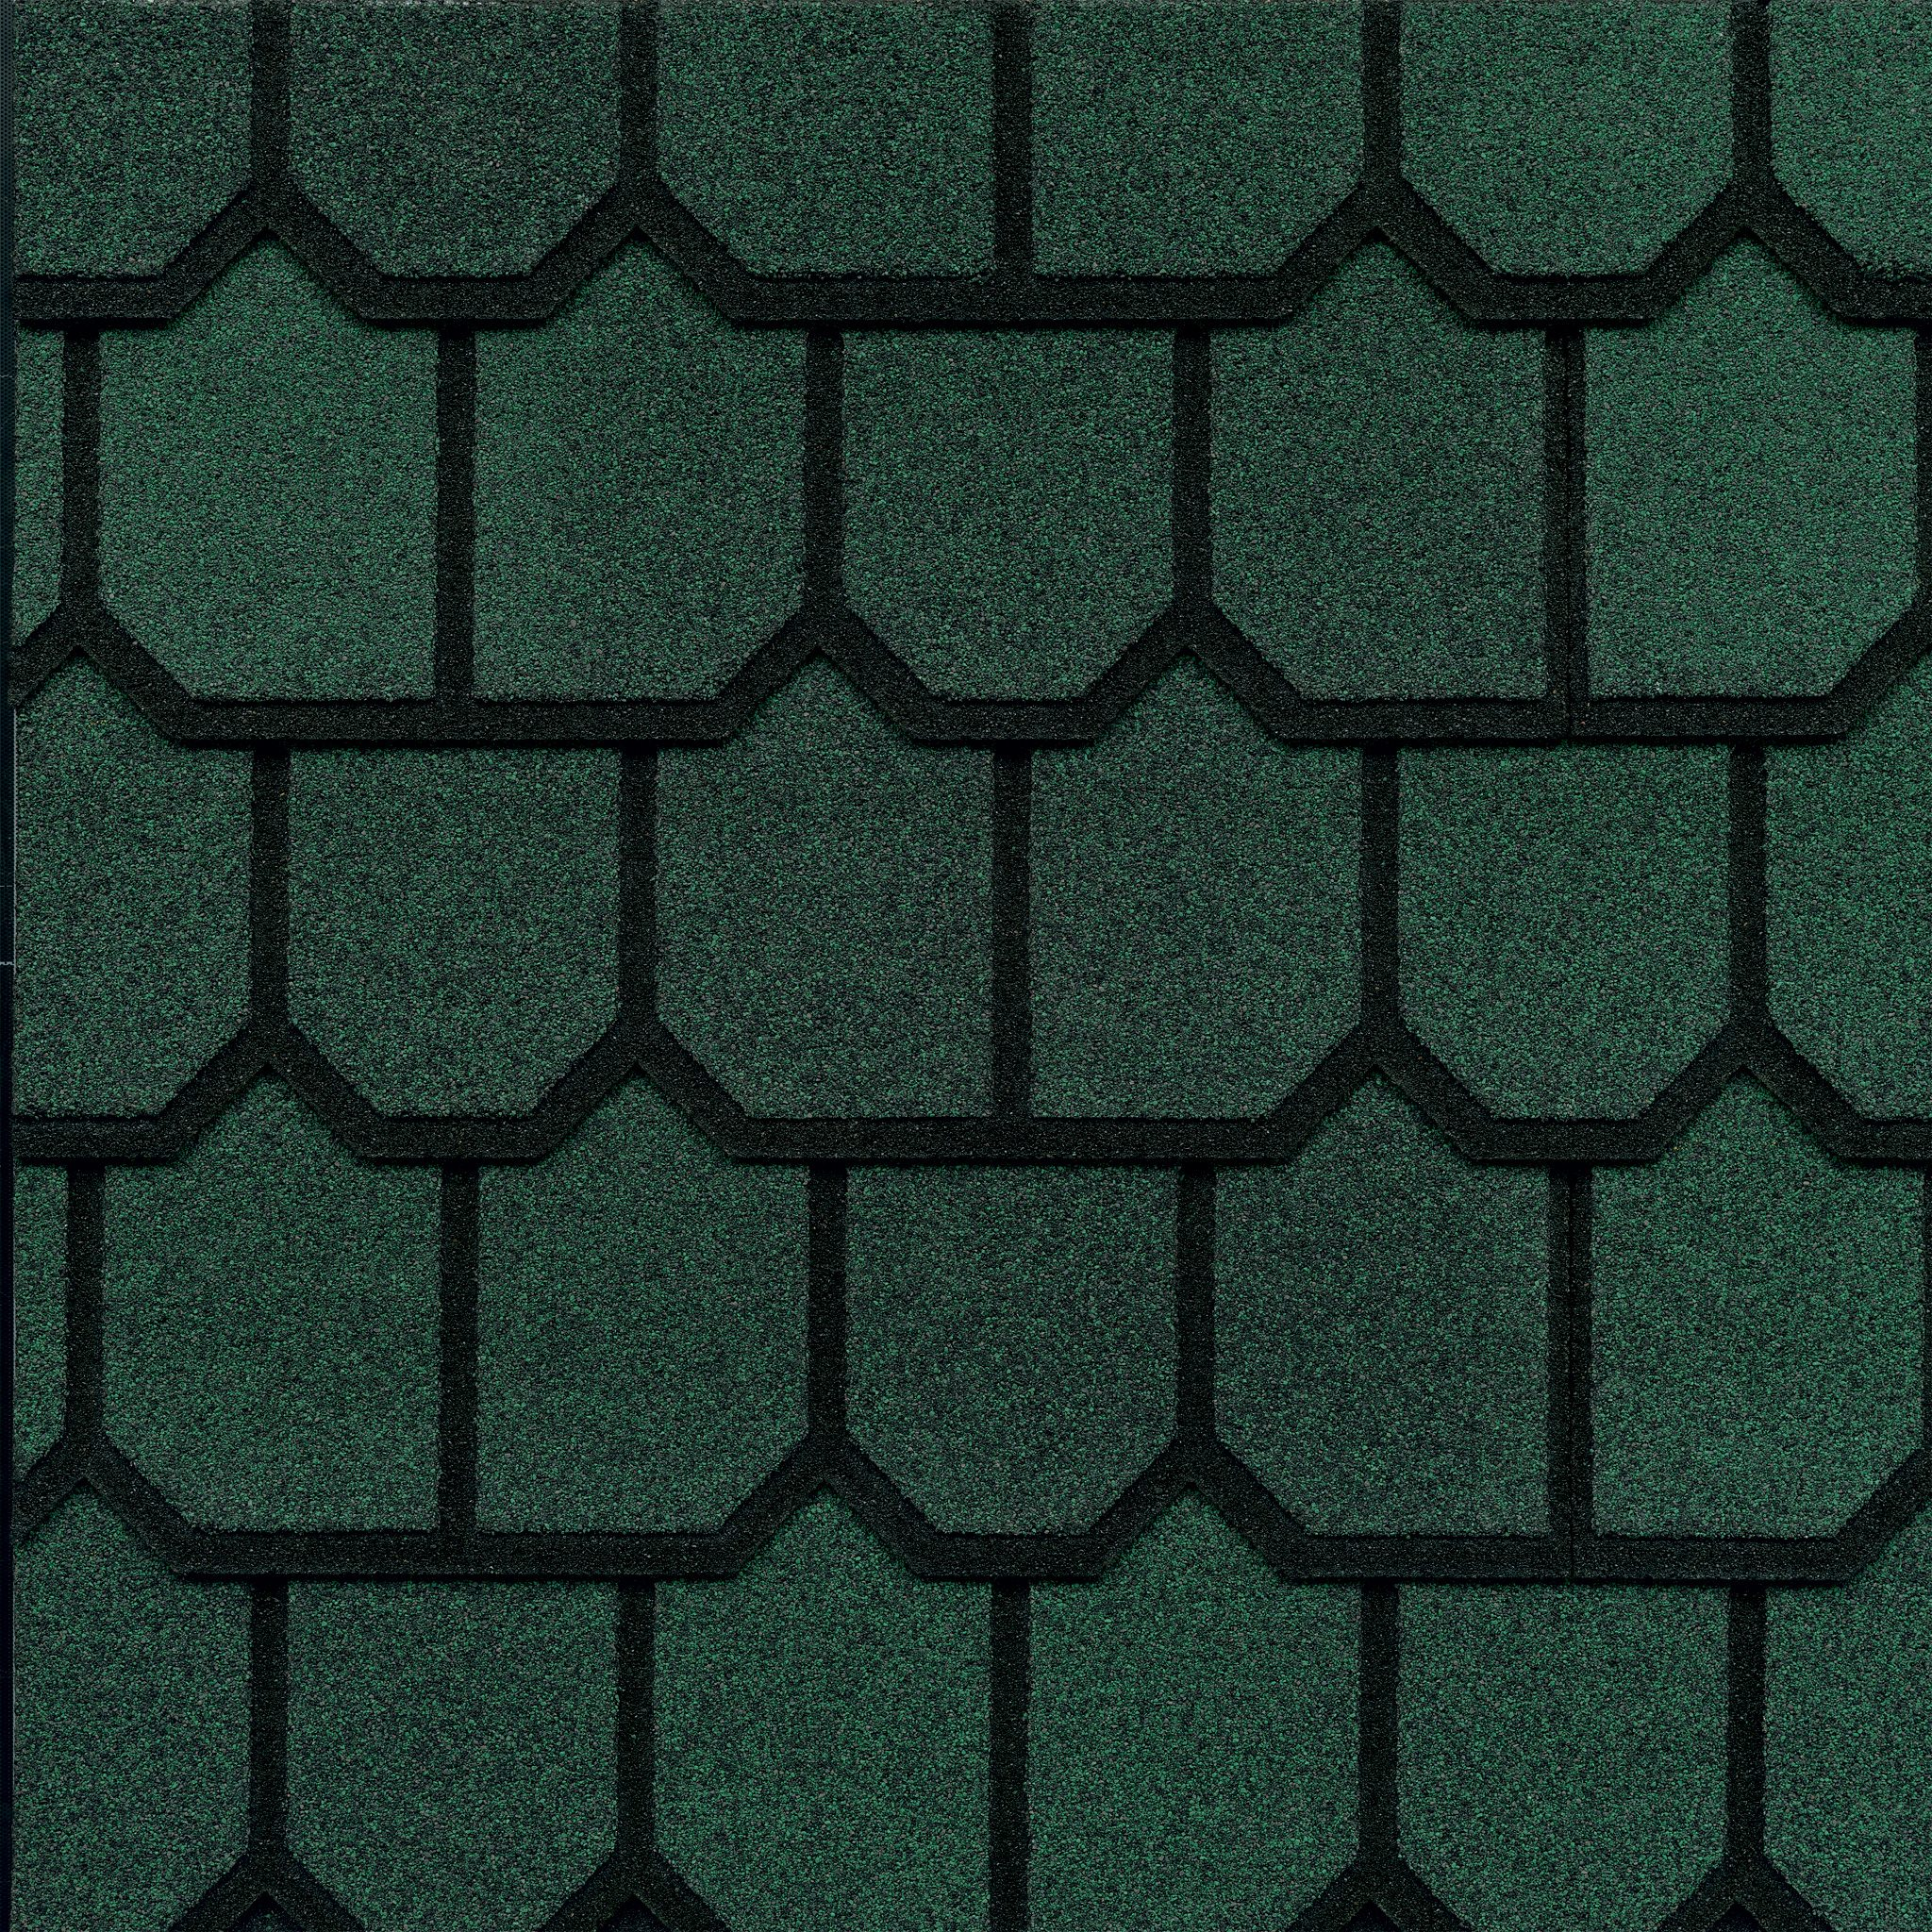 Close-up photo of GAF's Country Mansion Moss Green shingle swatch